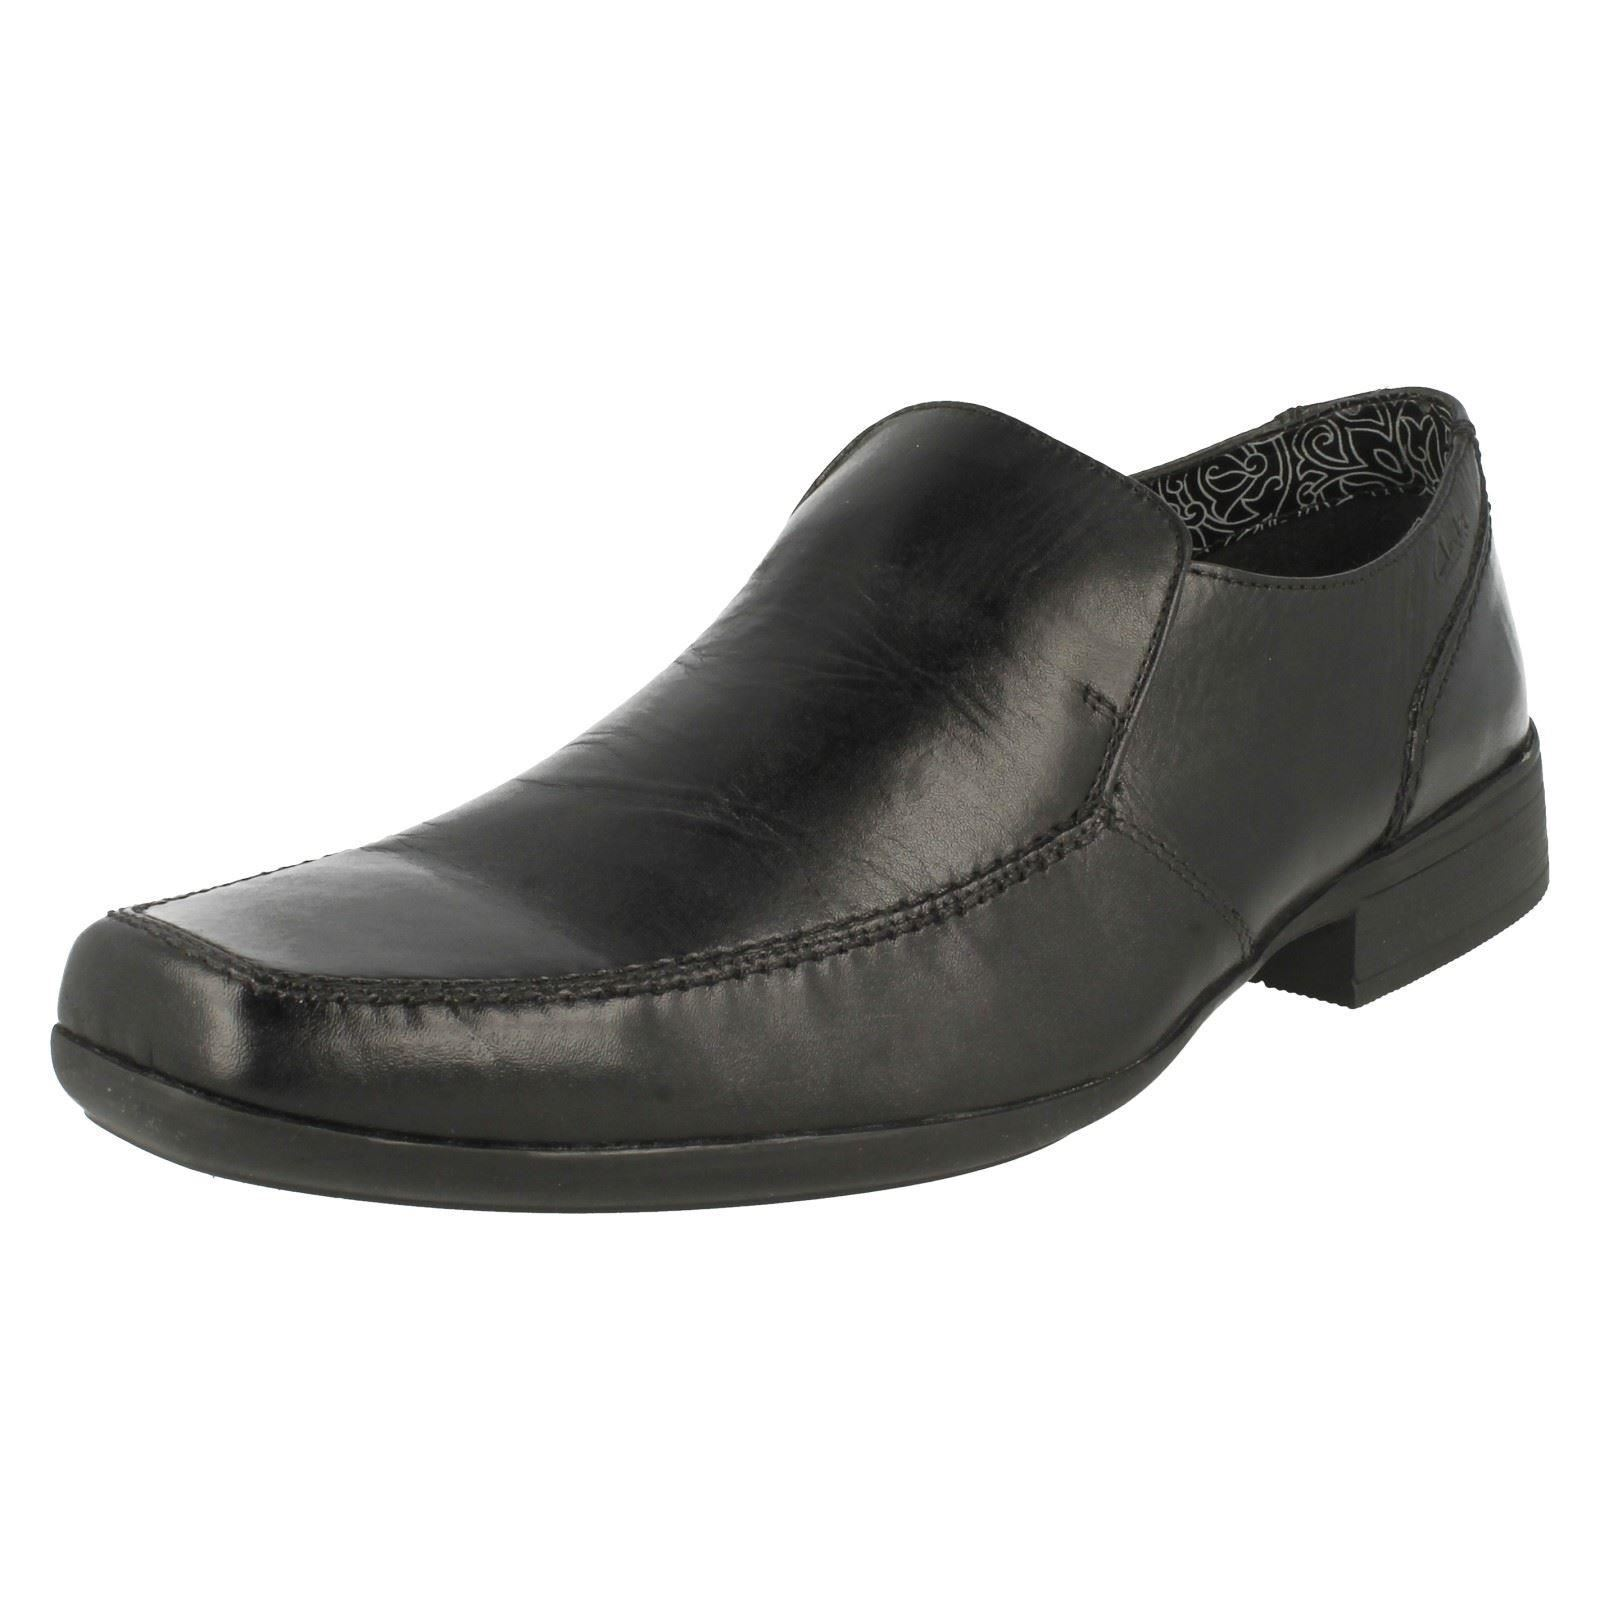 Mens Clarks Formal Slip On shoes Aze Day